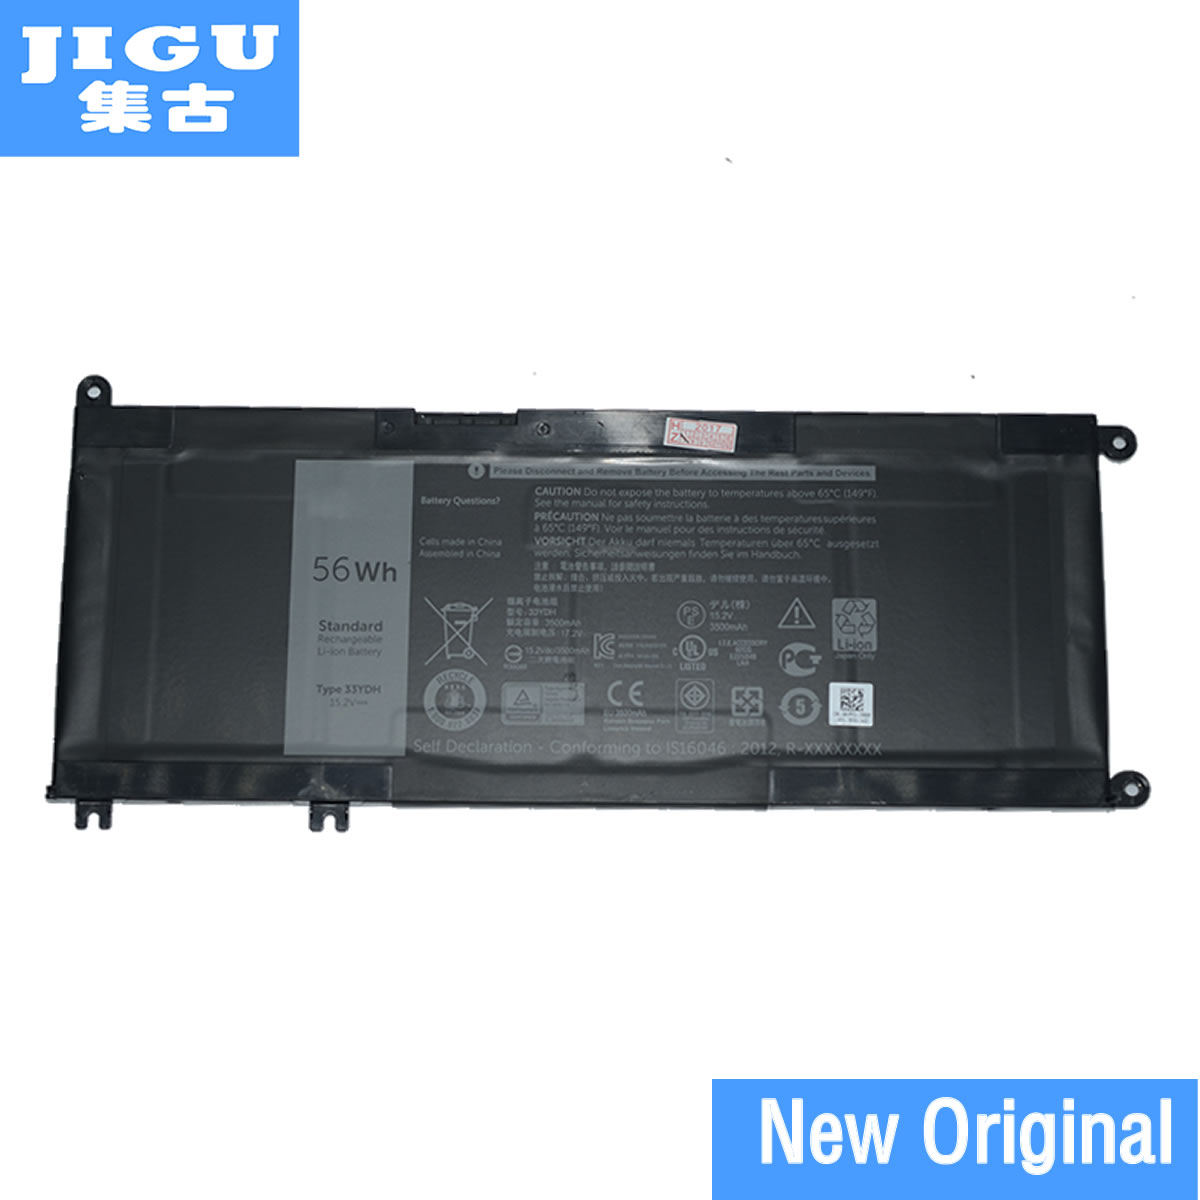 JIGU Original Laptop Battery 33YDH For DELL For Inspiron 17 7778 7779 стоимость